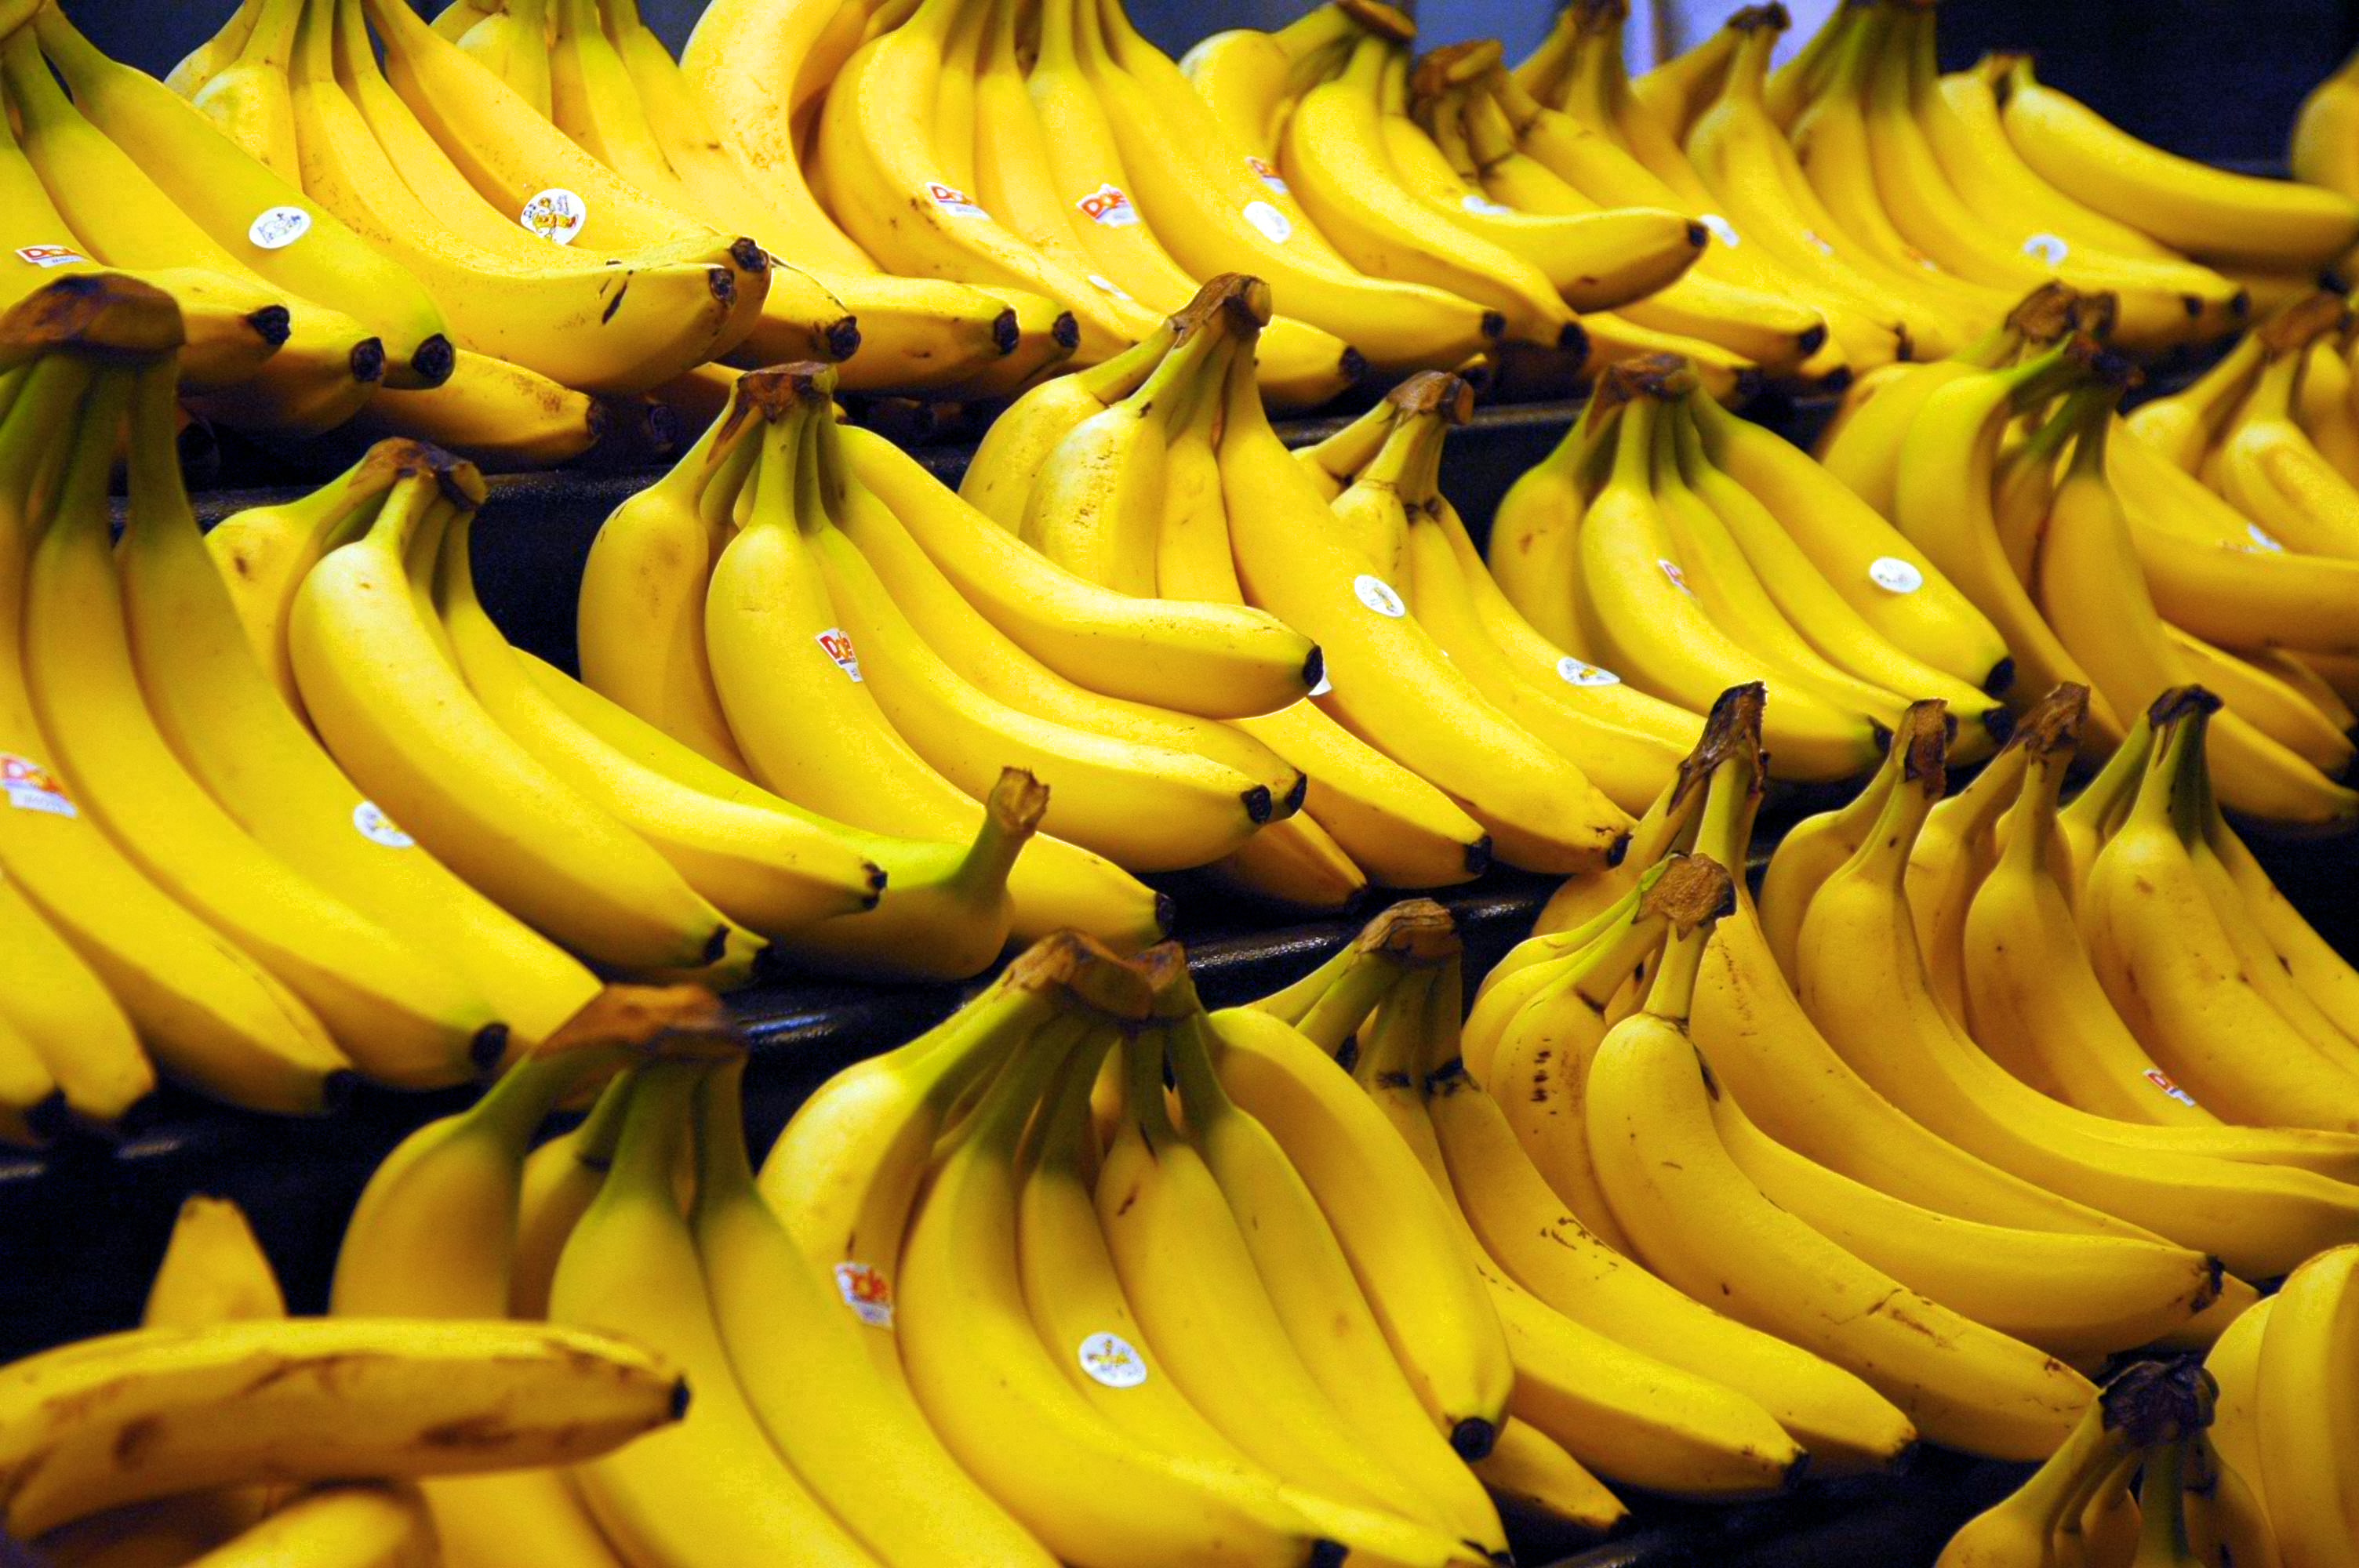 http://upload.wikimedia.org/wikipedia/commons/4/4c/Bananas.jpg